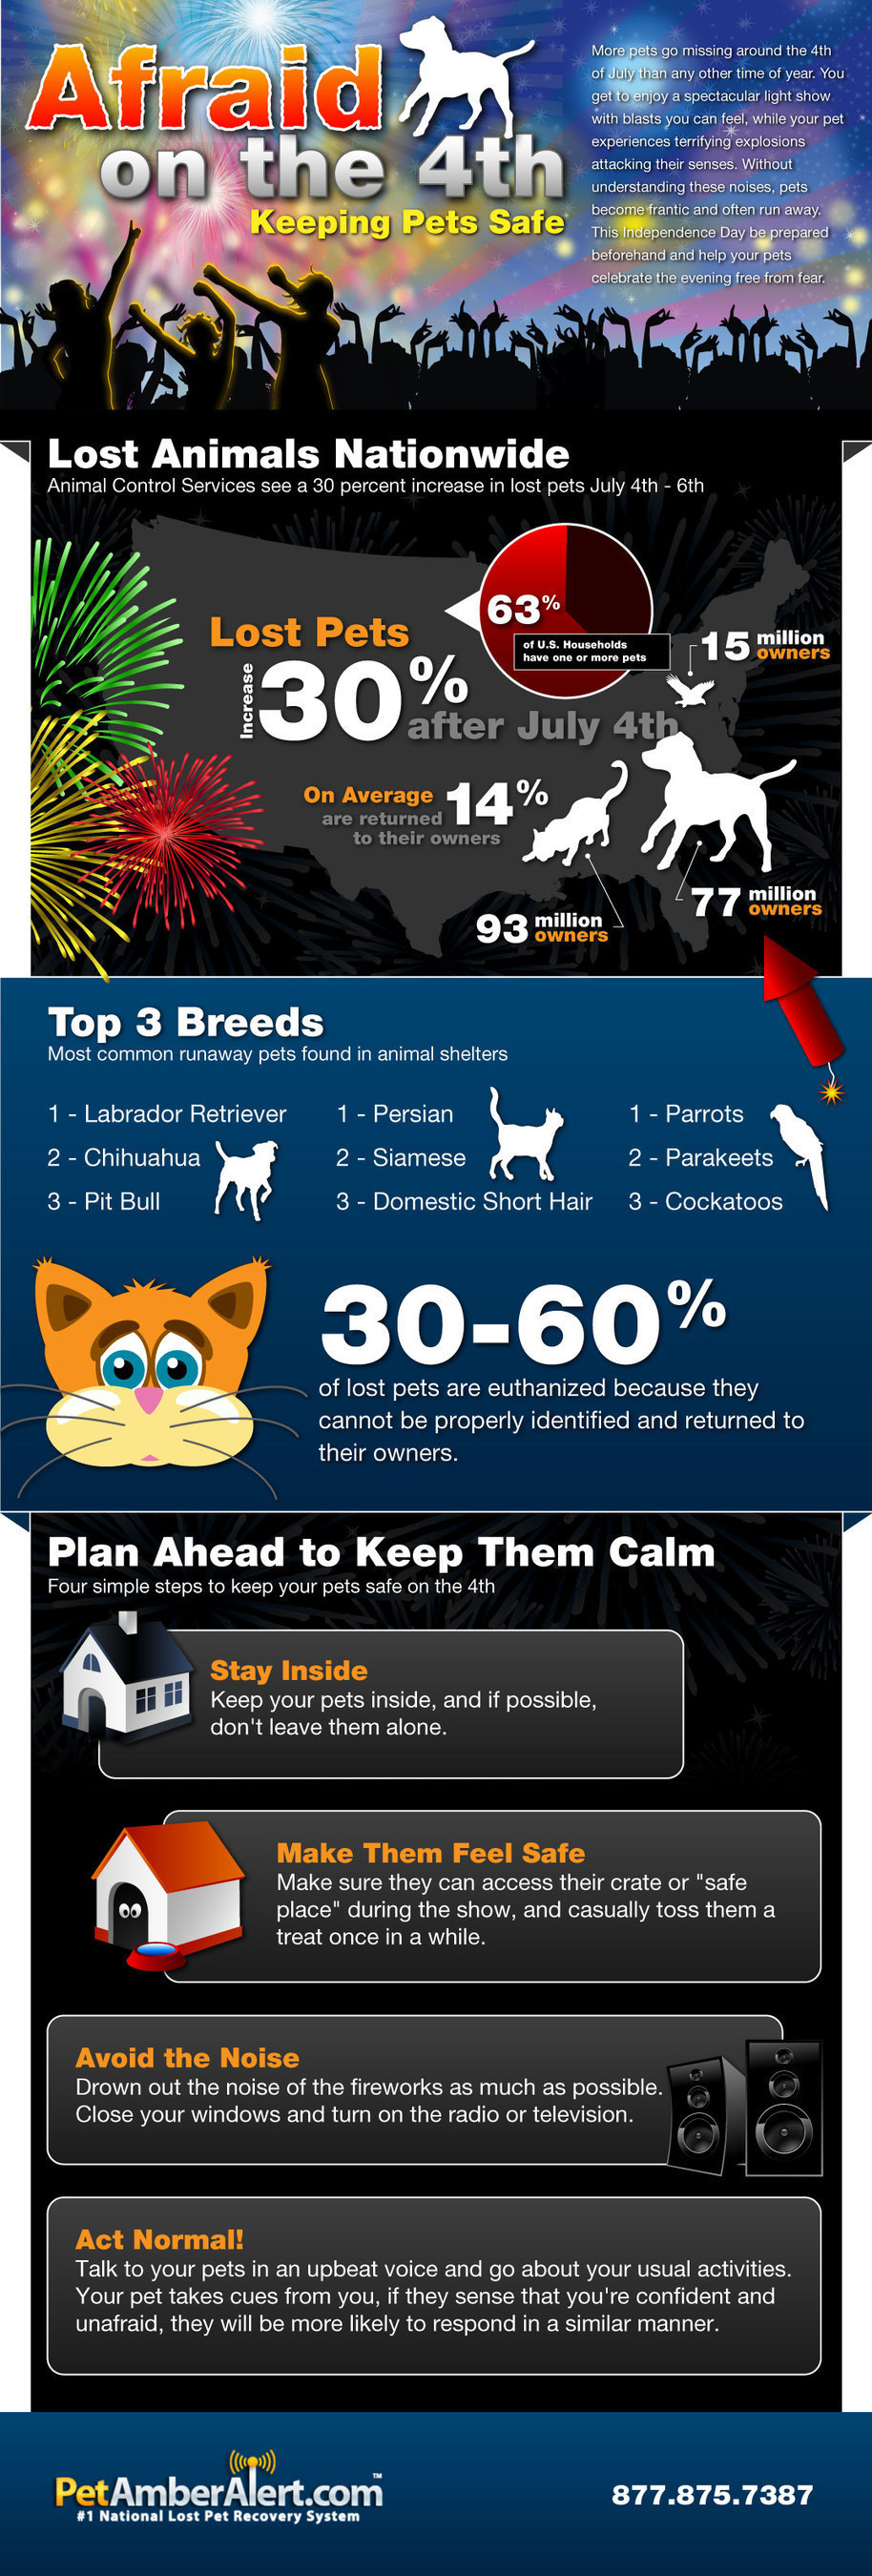 More Pets Lost on July 4th than any other time of the year